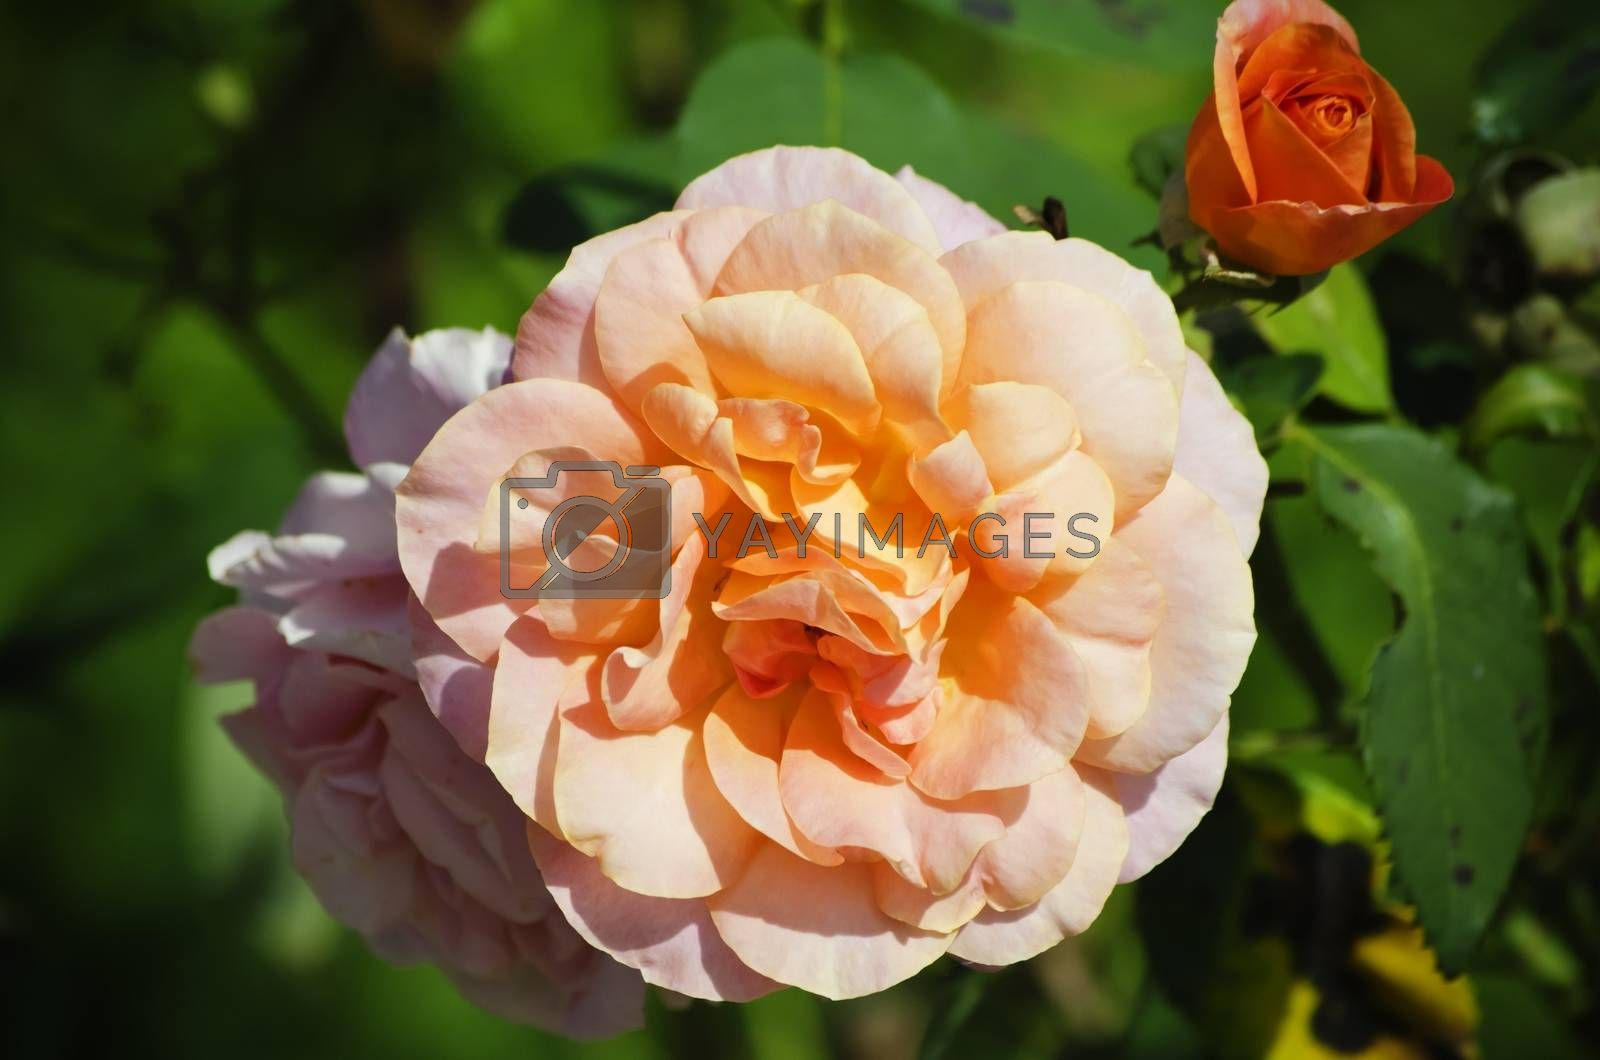 Photo of The Rose Flower Over Green Background